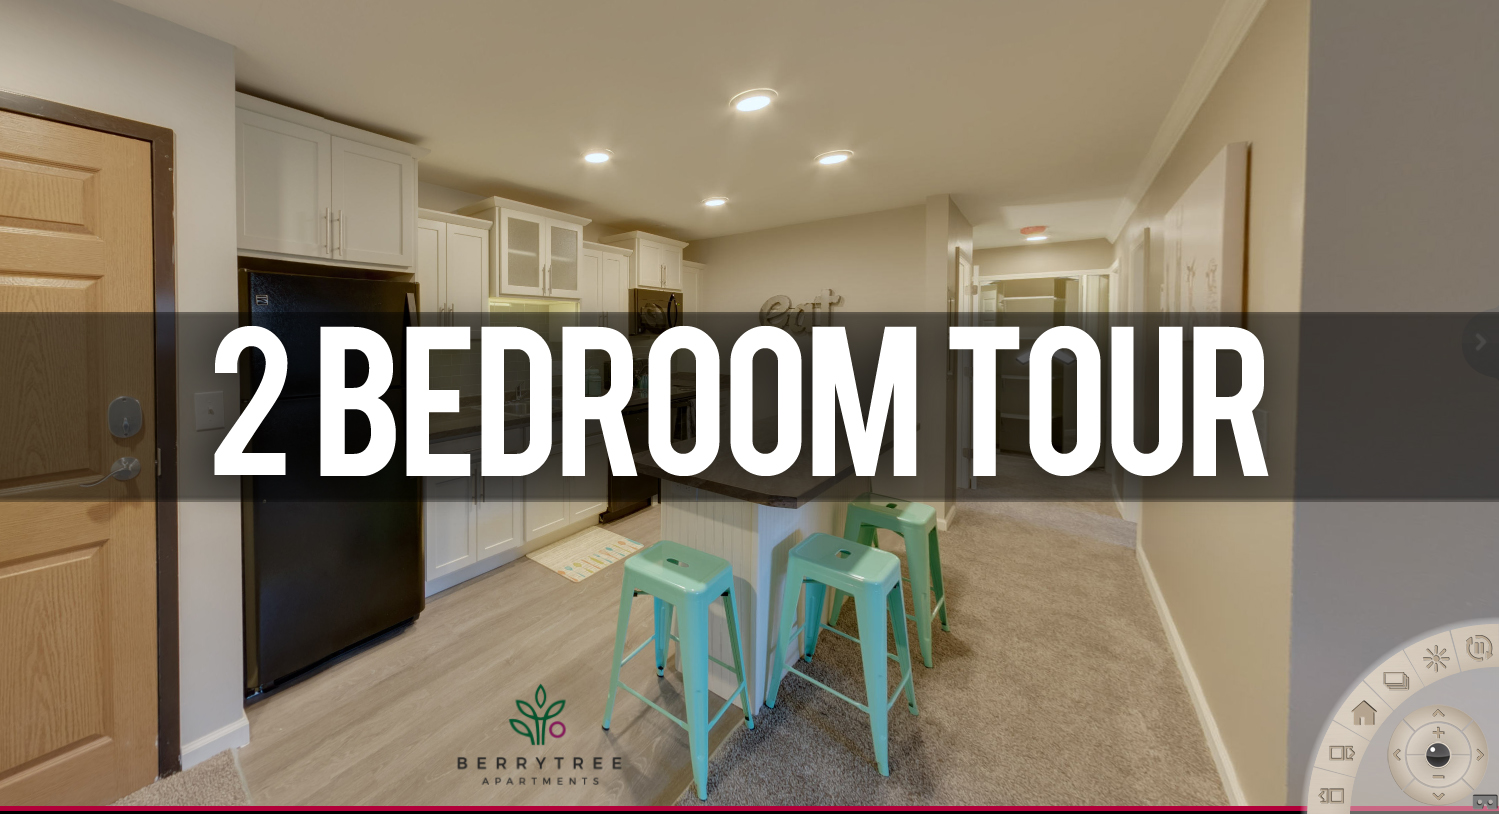 Virtual Tour 2 Bedroom Apartment at Berrytree Apartments Near Michigan State University